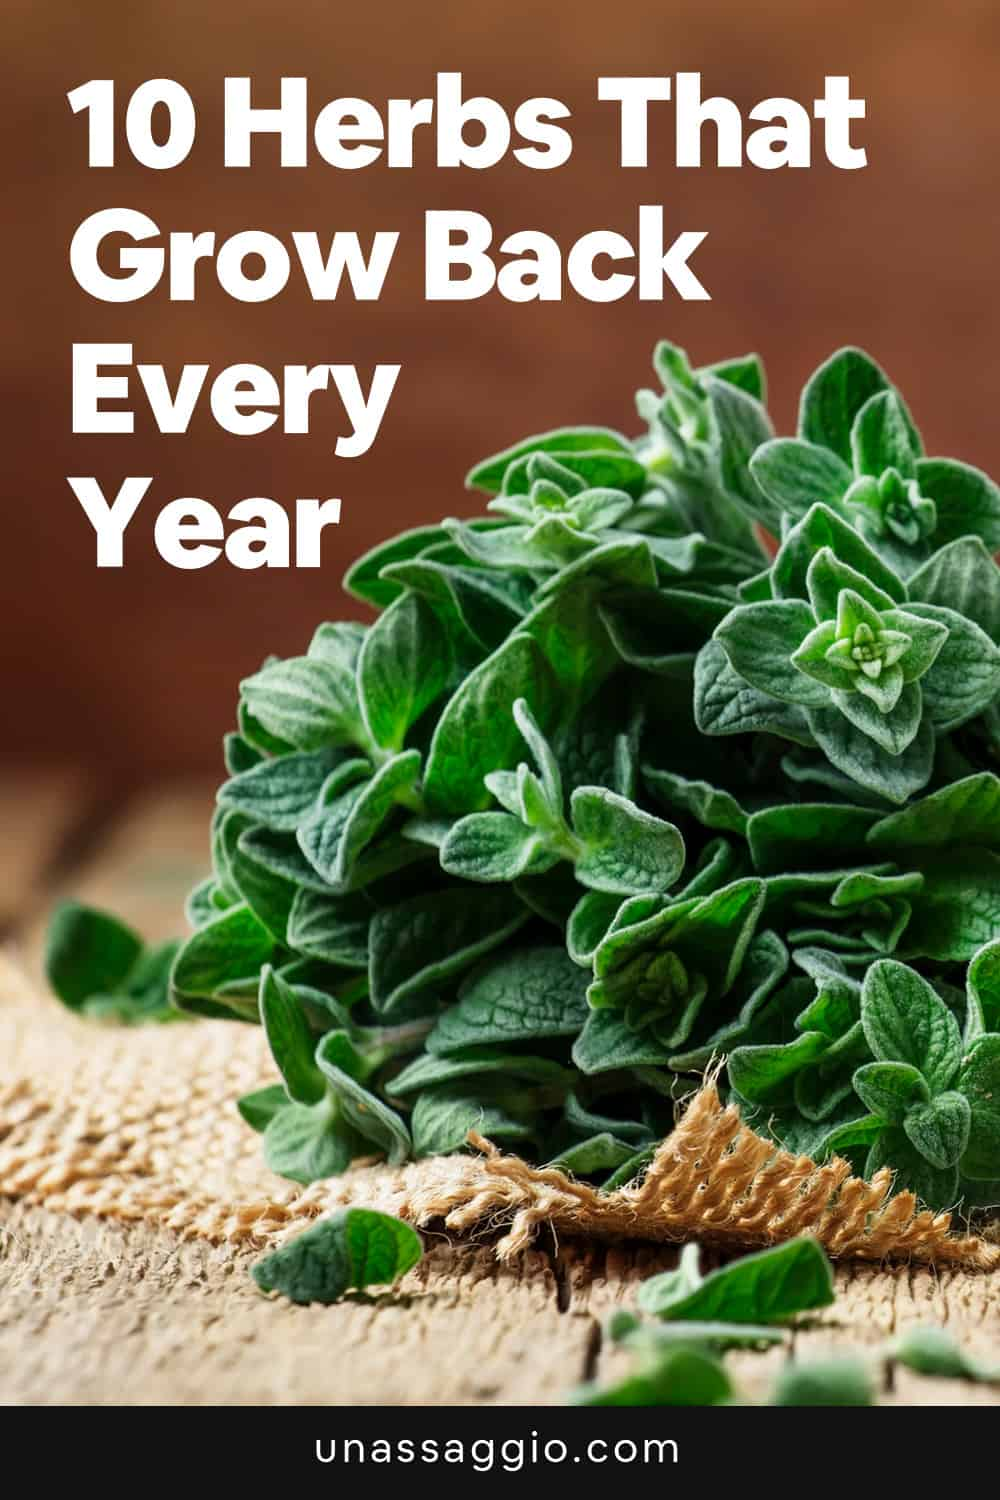 10 Herbs That Grow Back Every Year